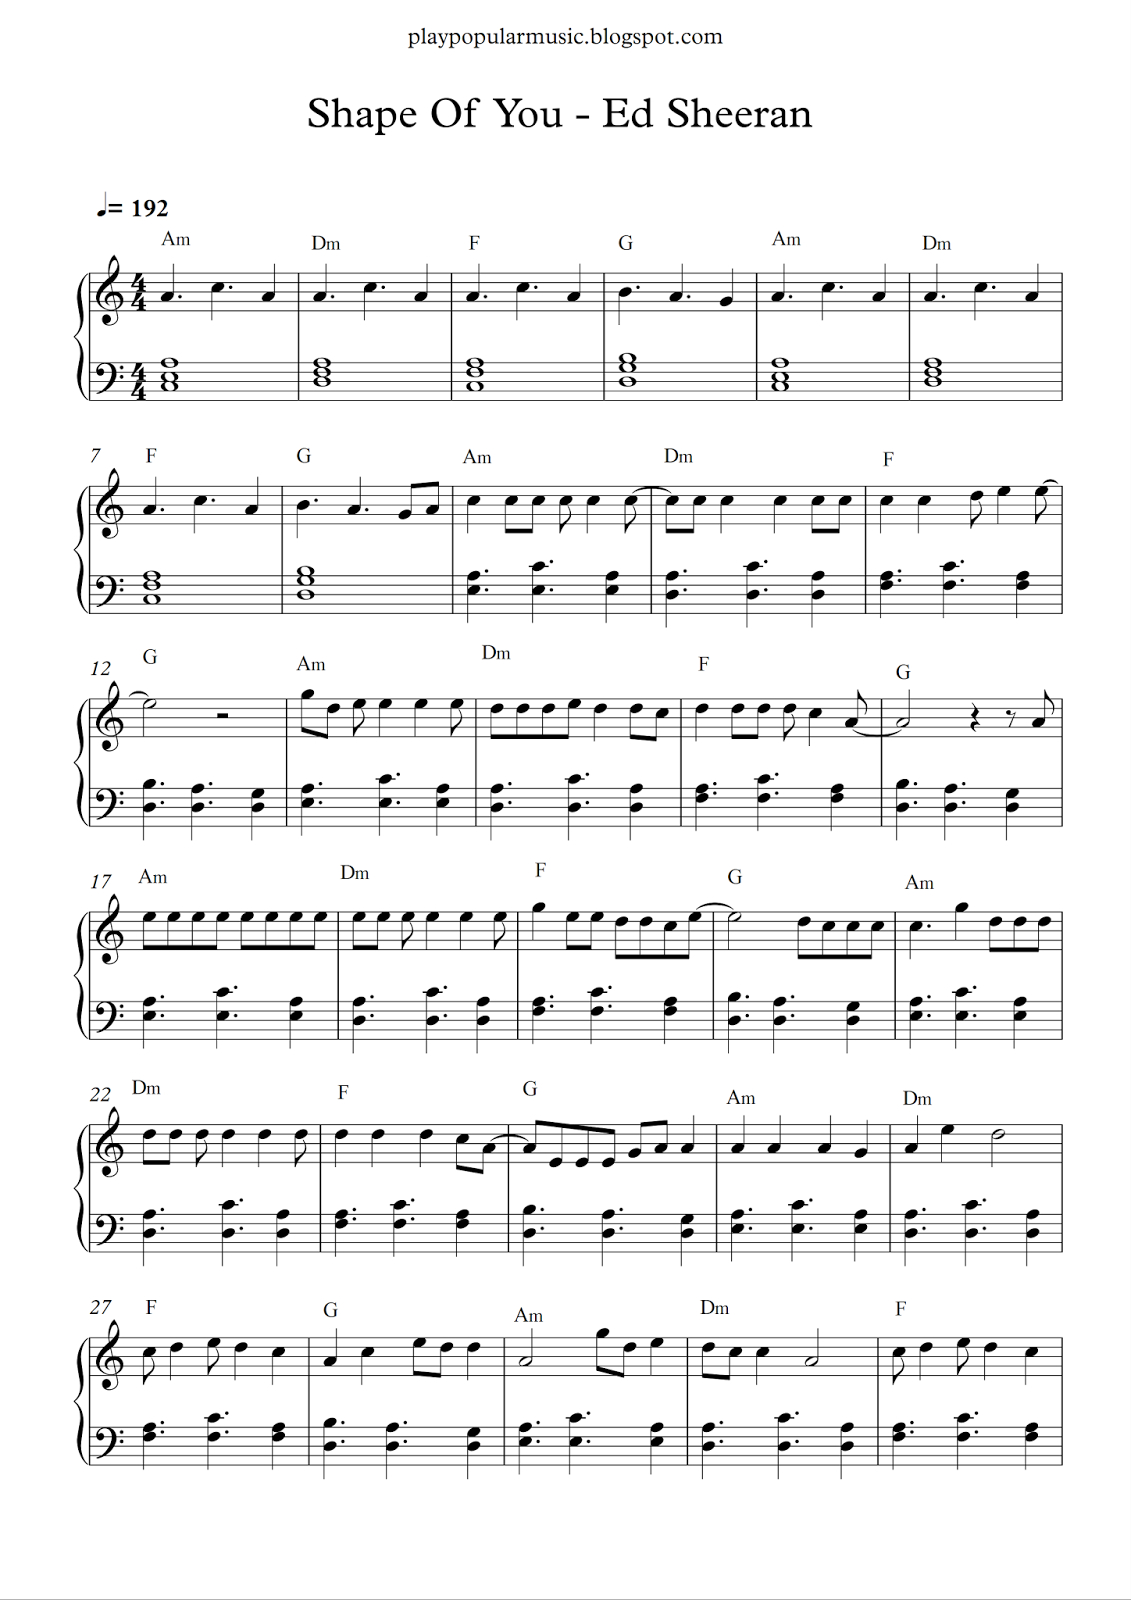 Free Piano Sheet Music: Shape Of You-Ed Sheeran.pdf Your Love Was - All Of Me Easy Piano Sheet Music Free Printable